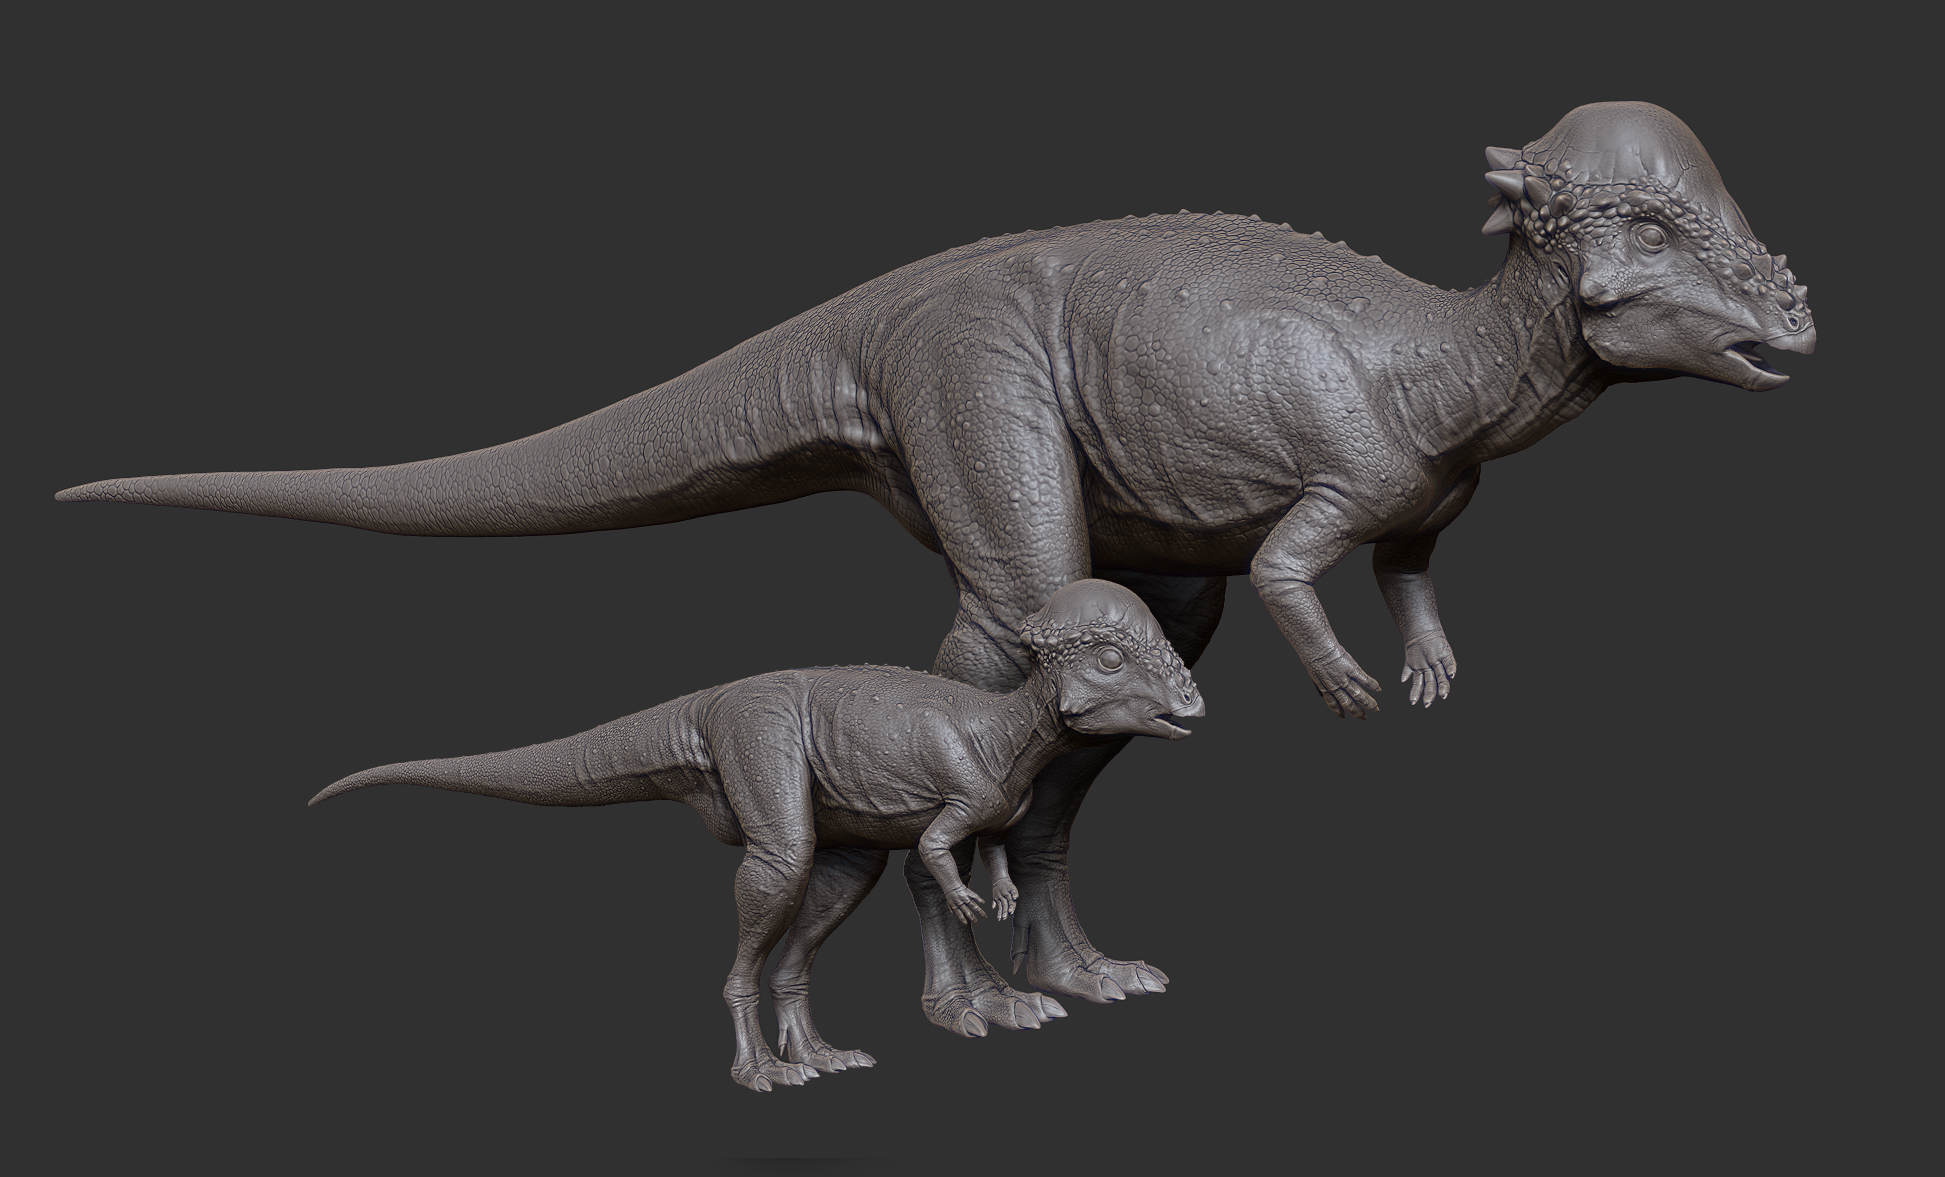 Conceptual on Baby Dinosaurs